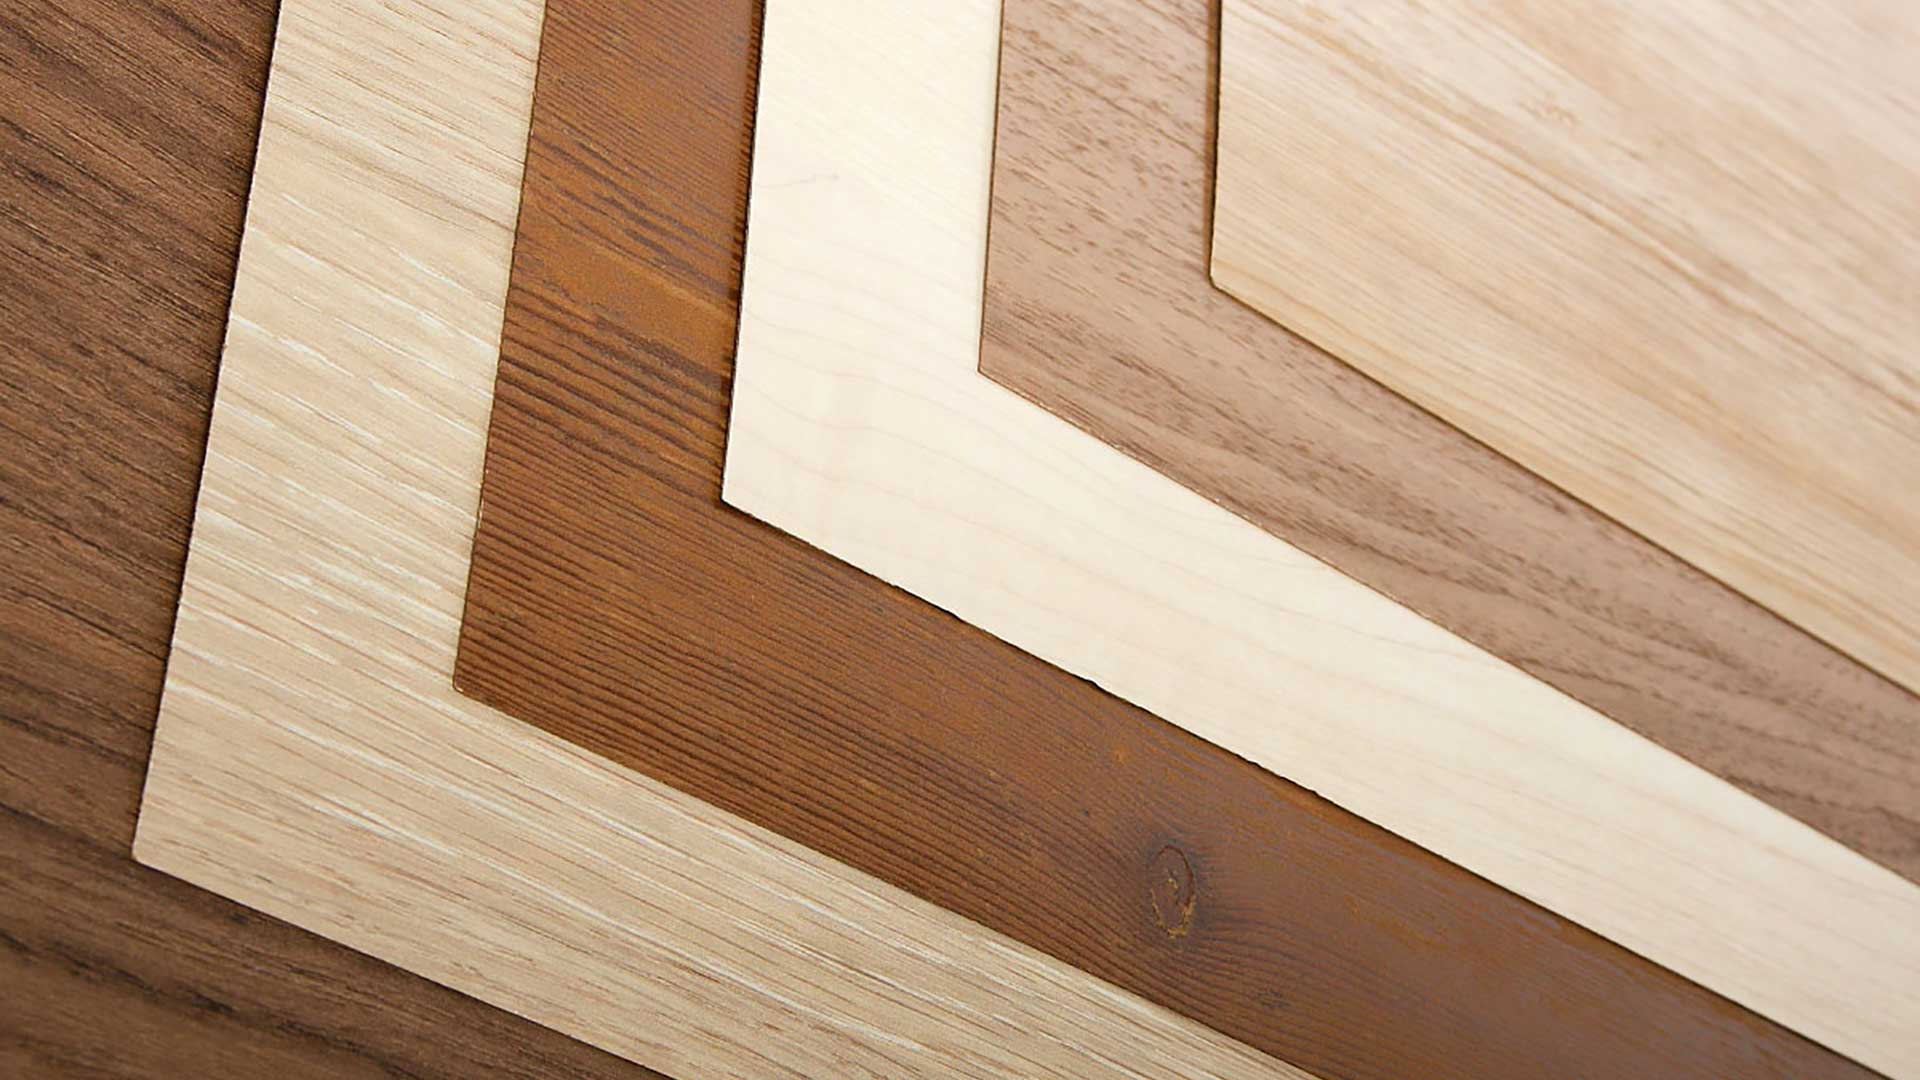 Beautifully finished wood based products for modern interiors